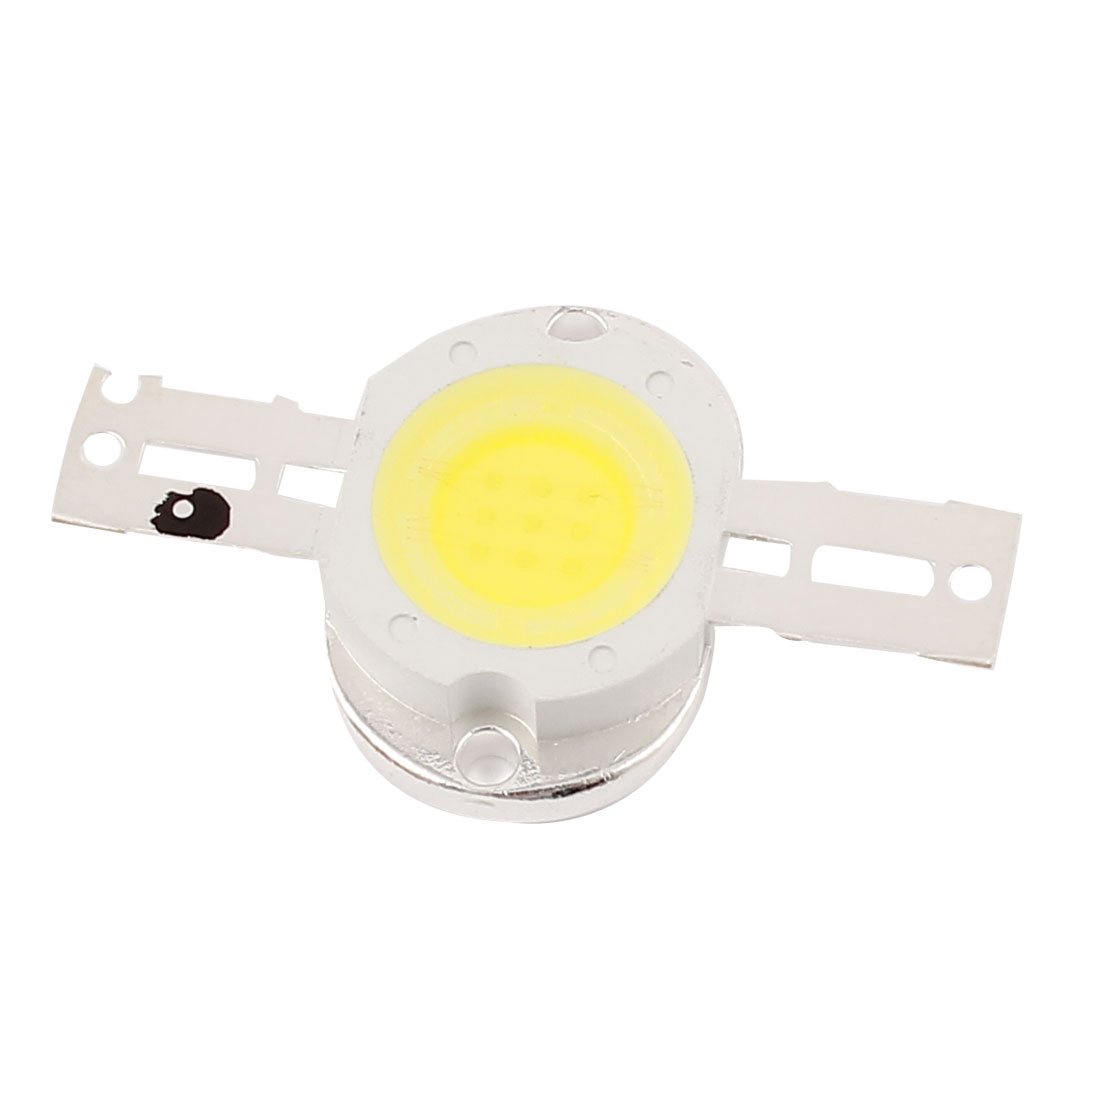 DC10-12V 10W 1000-1100LM Pure White High Power Led Bead Chip Flood Light